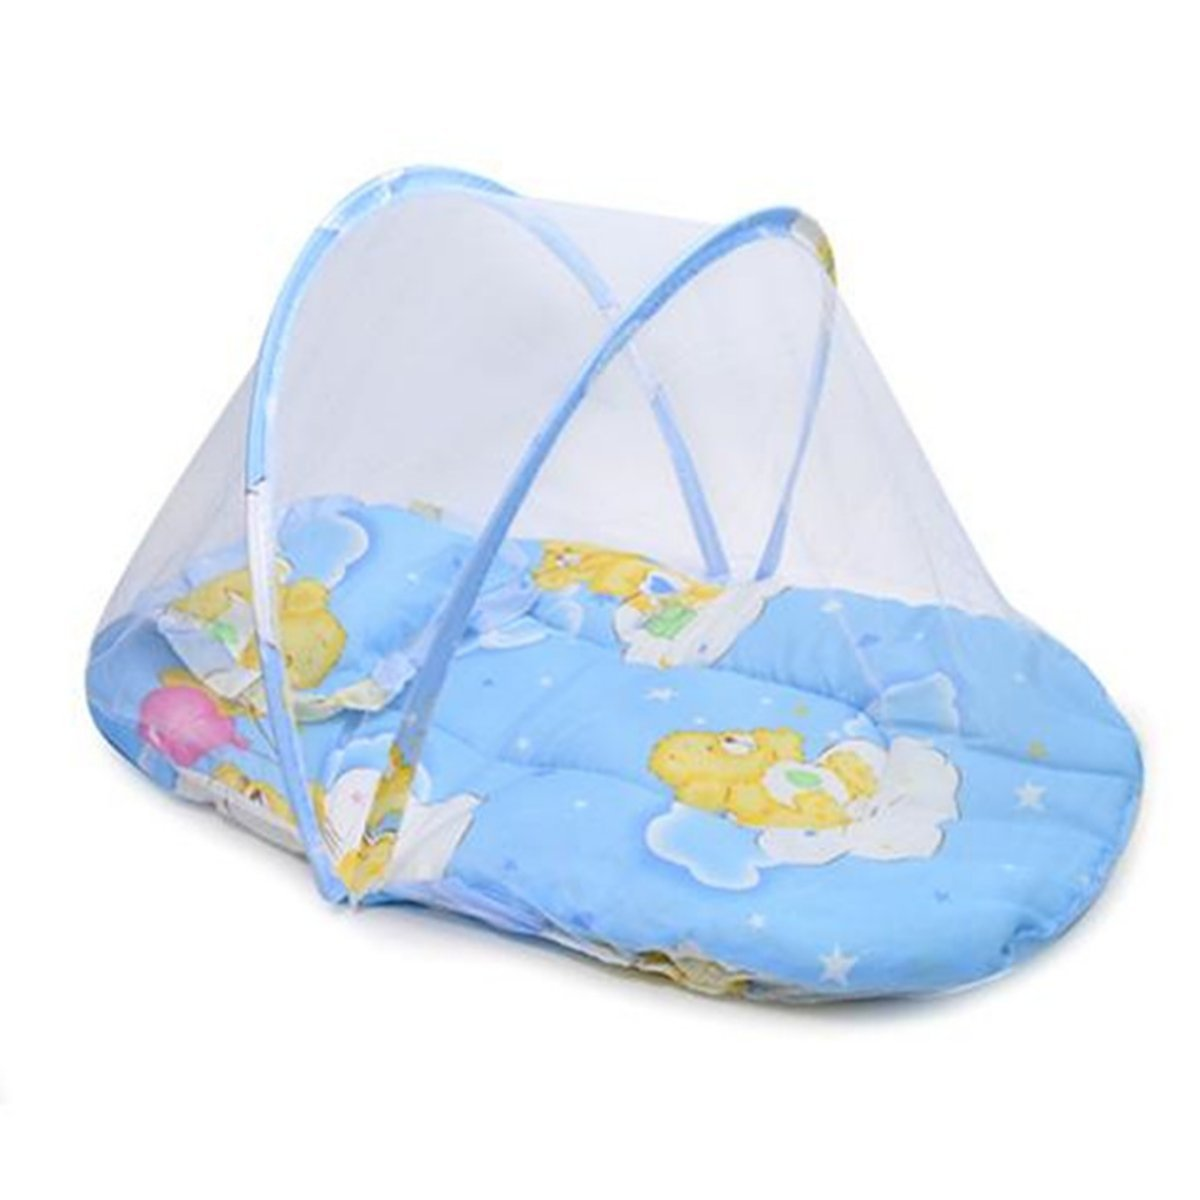 Baby bed net - Amazon Com Infant Baby Boys Girls Mosquito Net Crib Bed Winzik Portable Folding Baby Mosquito Nursery Bed Net With Little Mattress And Pillow